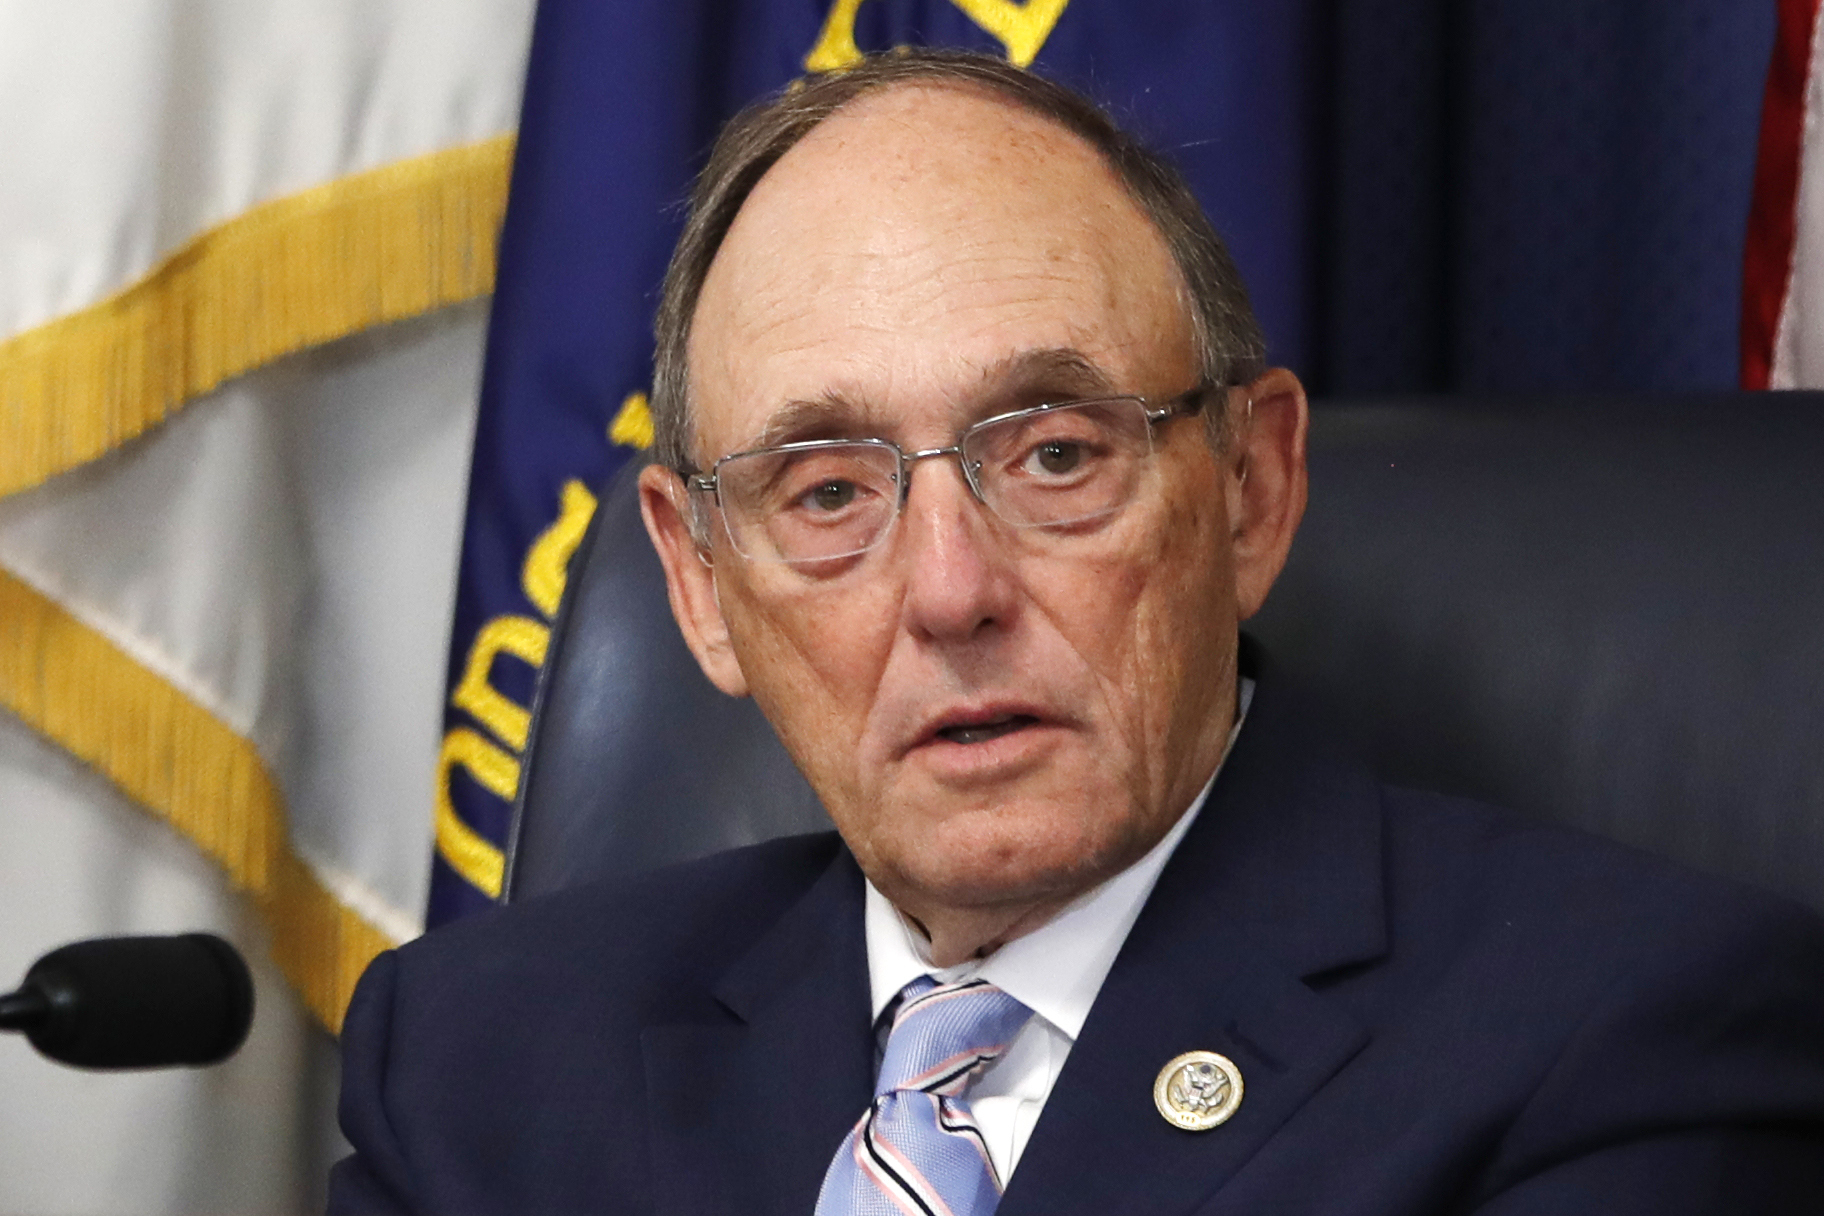 House Veterans Affairs Chair Rep. Phil Roe, R-Tenn., speaks during a subcommittee hearing about the Accountability and Whistleblower Protection Act on Capitol Hill in Washington on July 17, 2018.